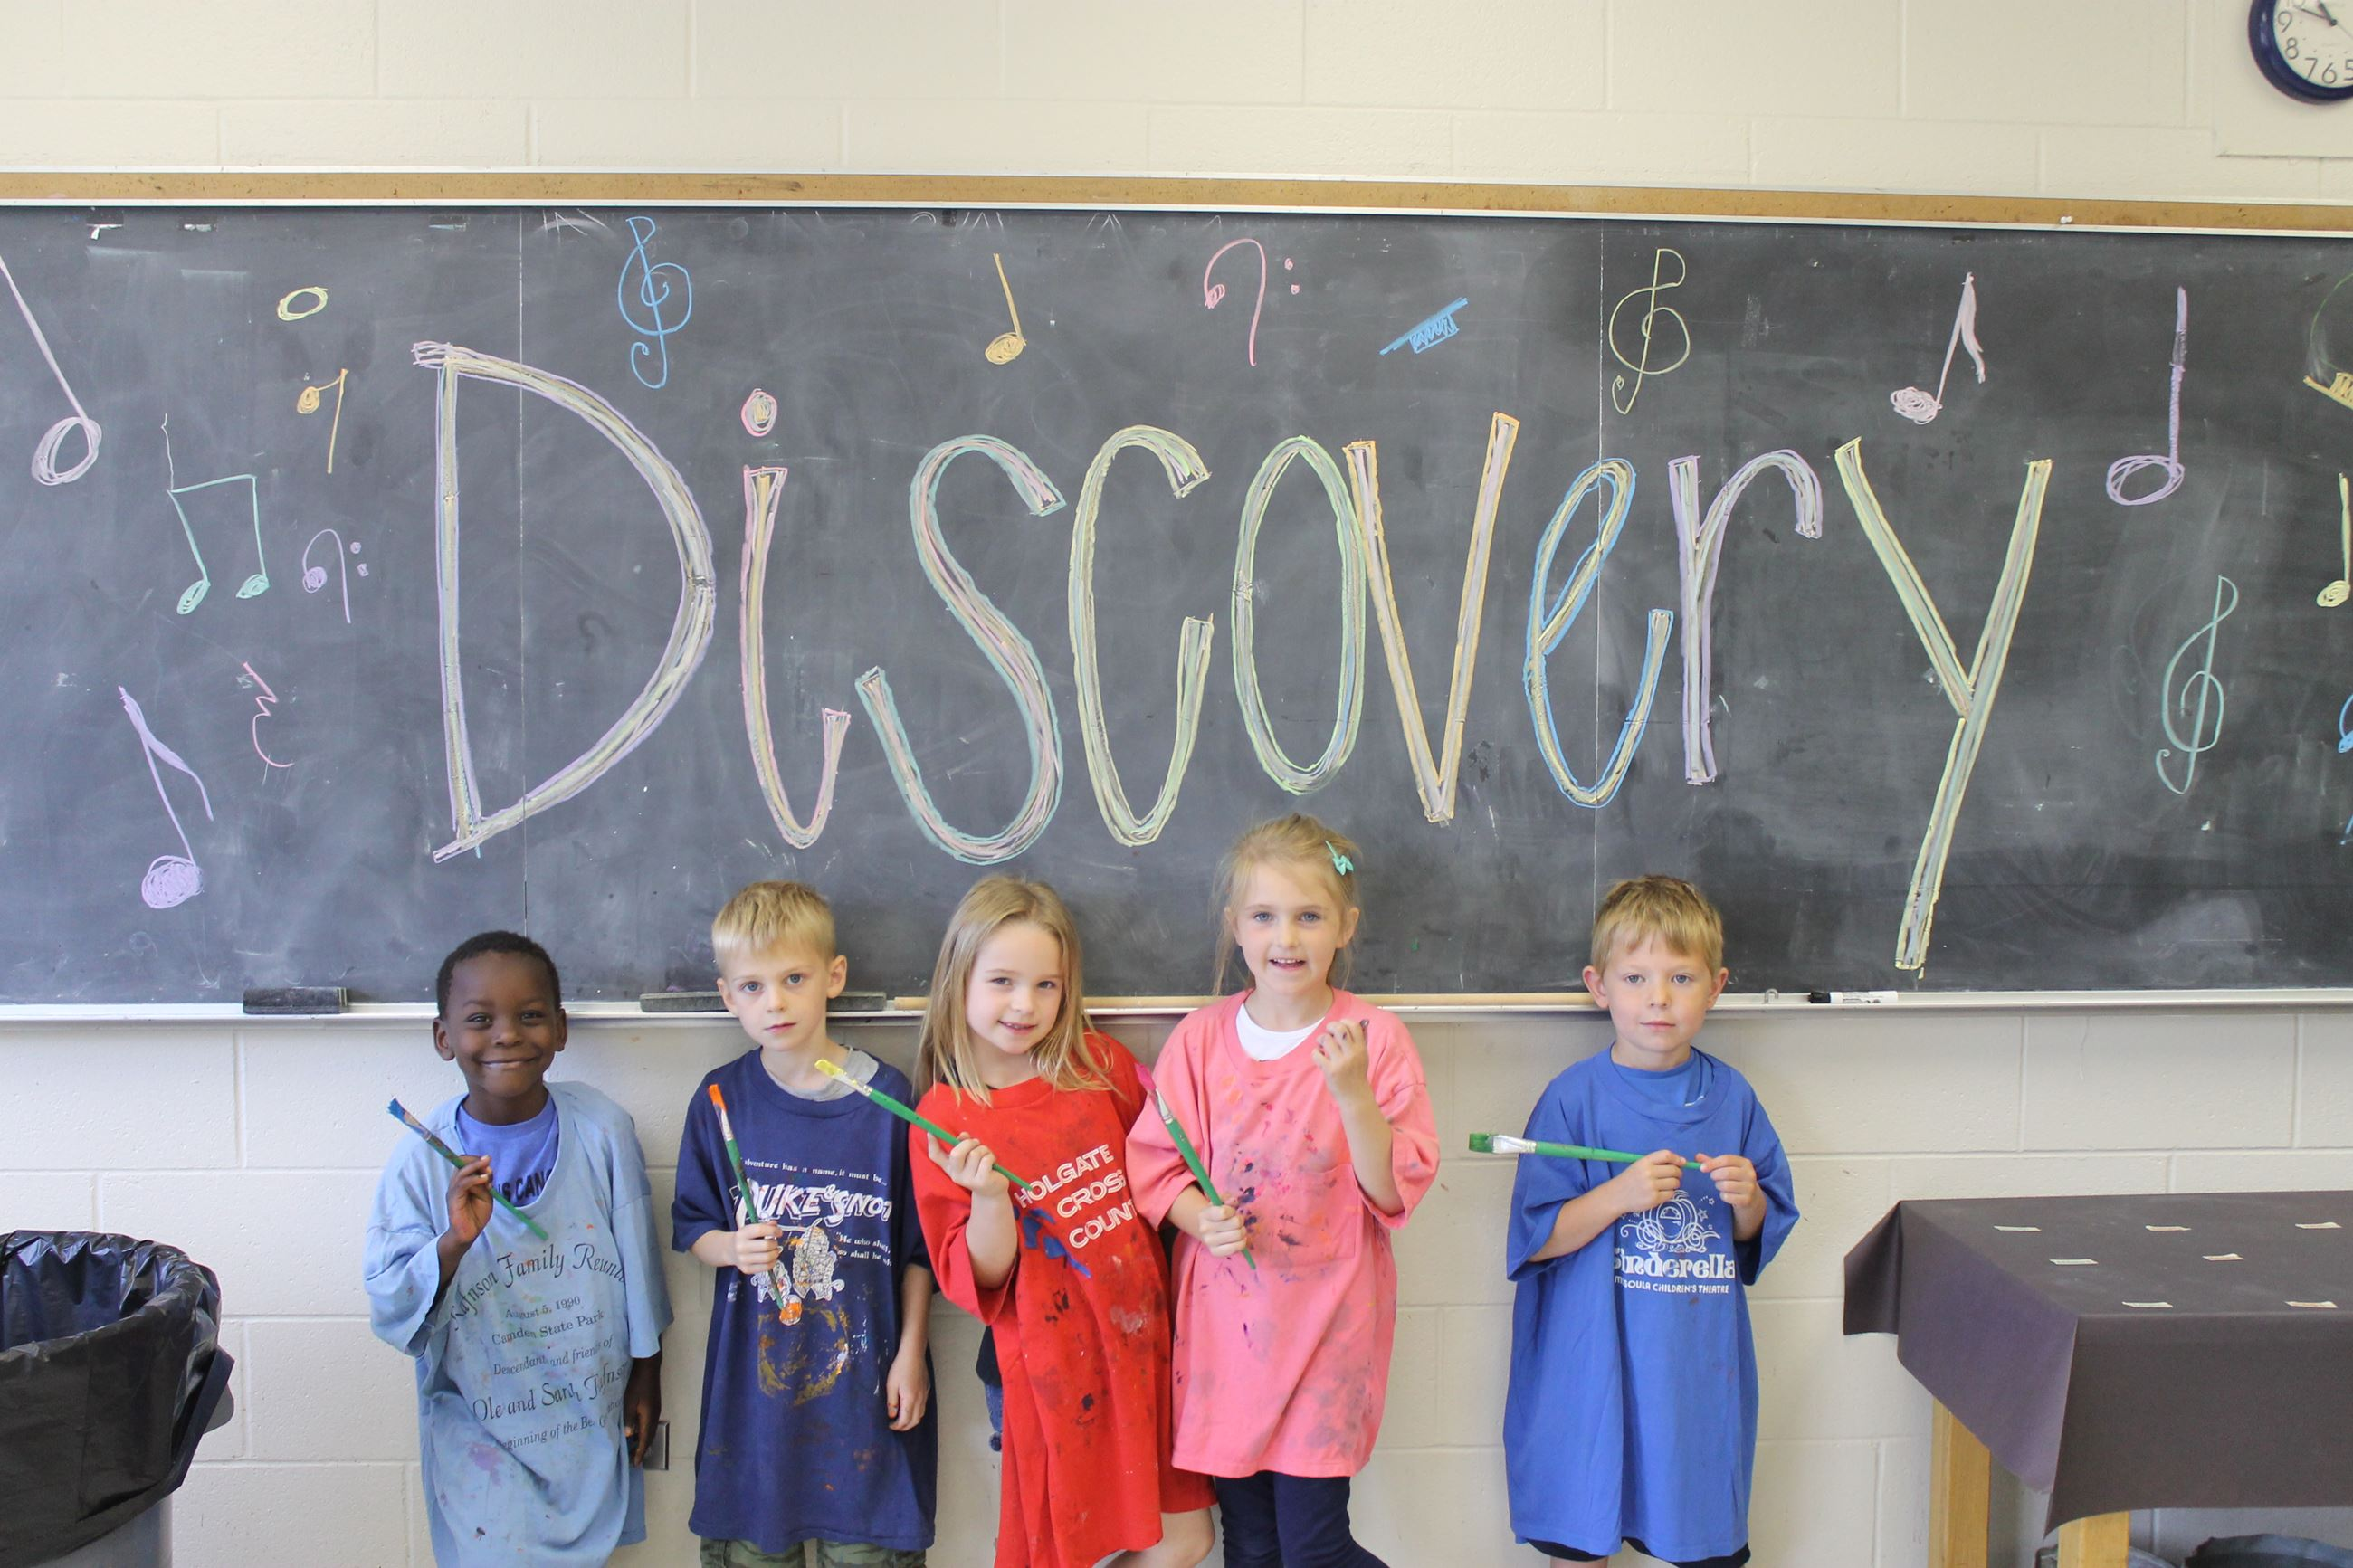 Group of children standing under a Discovery sign on chalk board